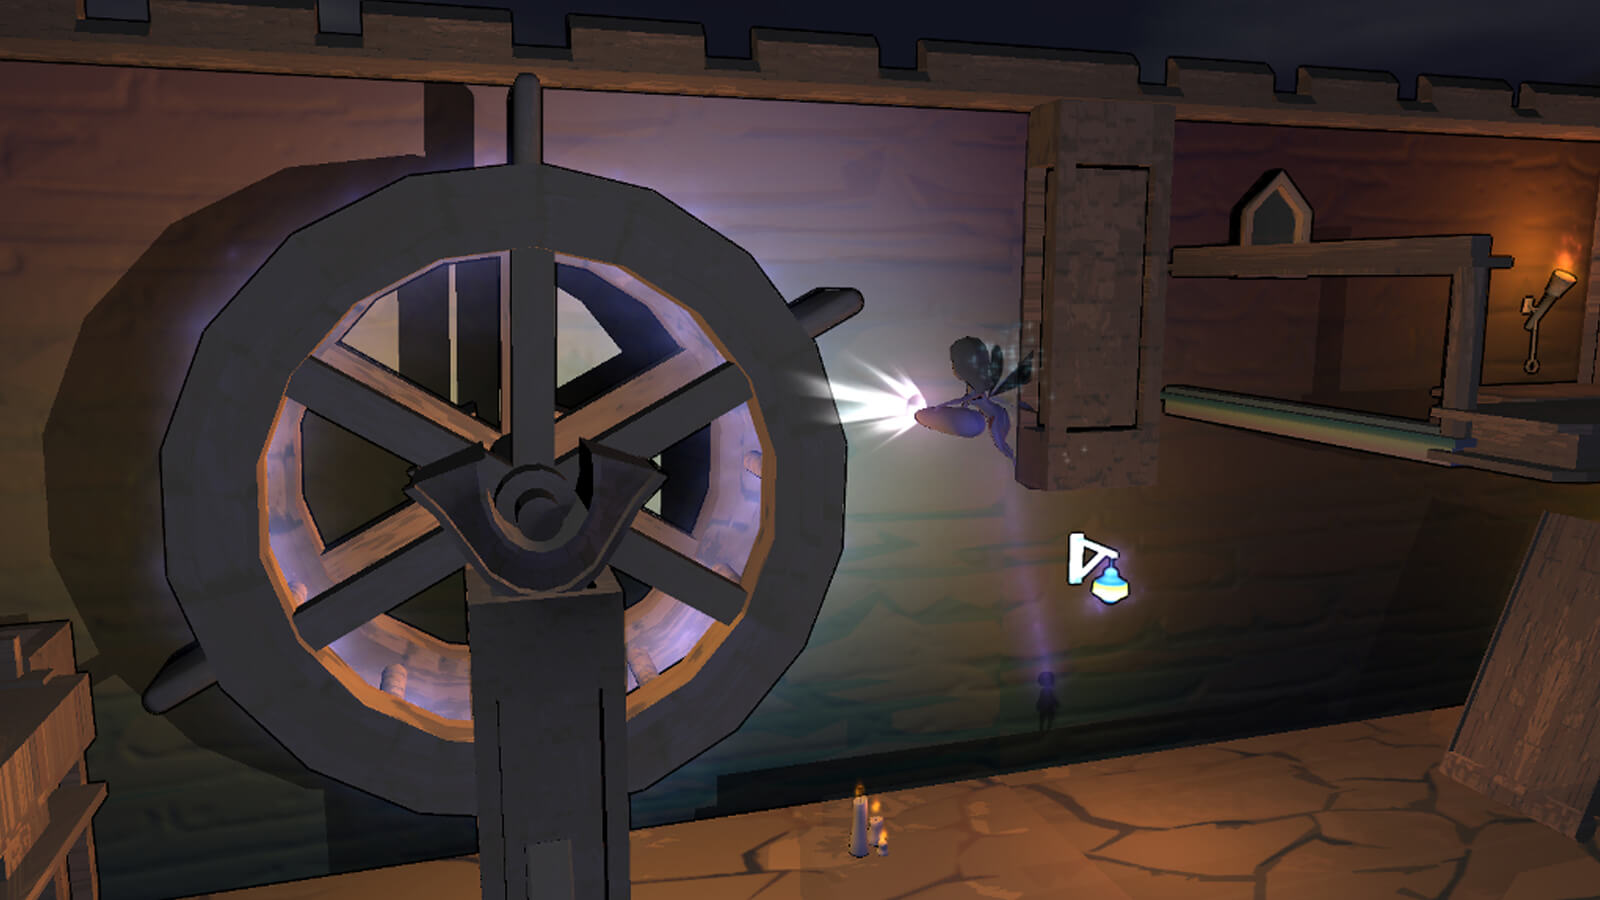 The player's fairy character illuminates a wooden waterwheel